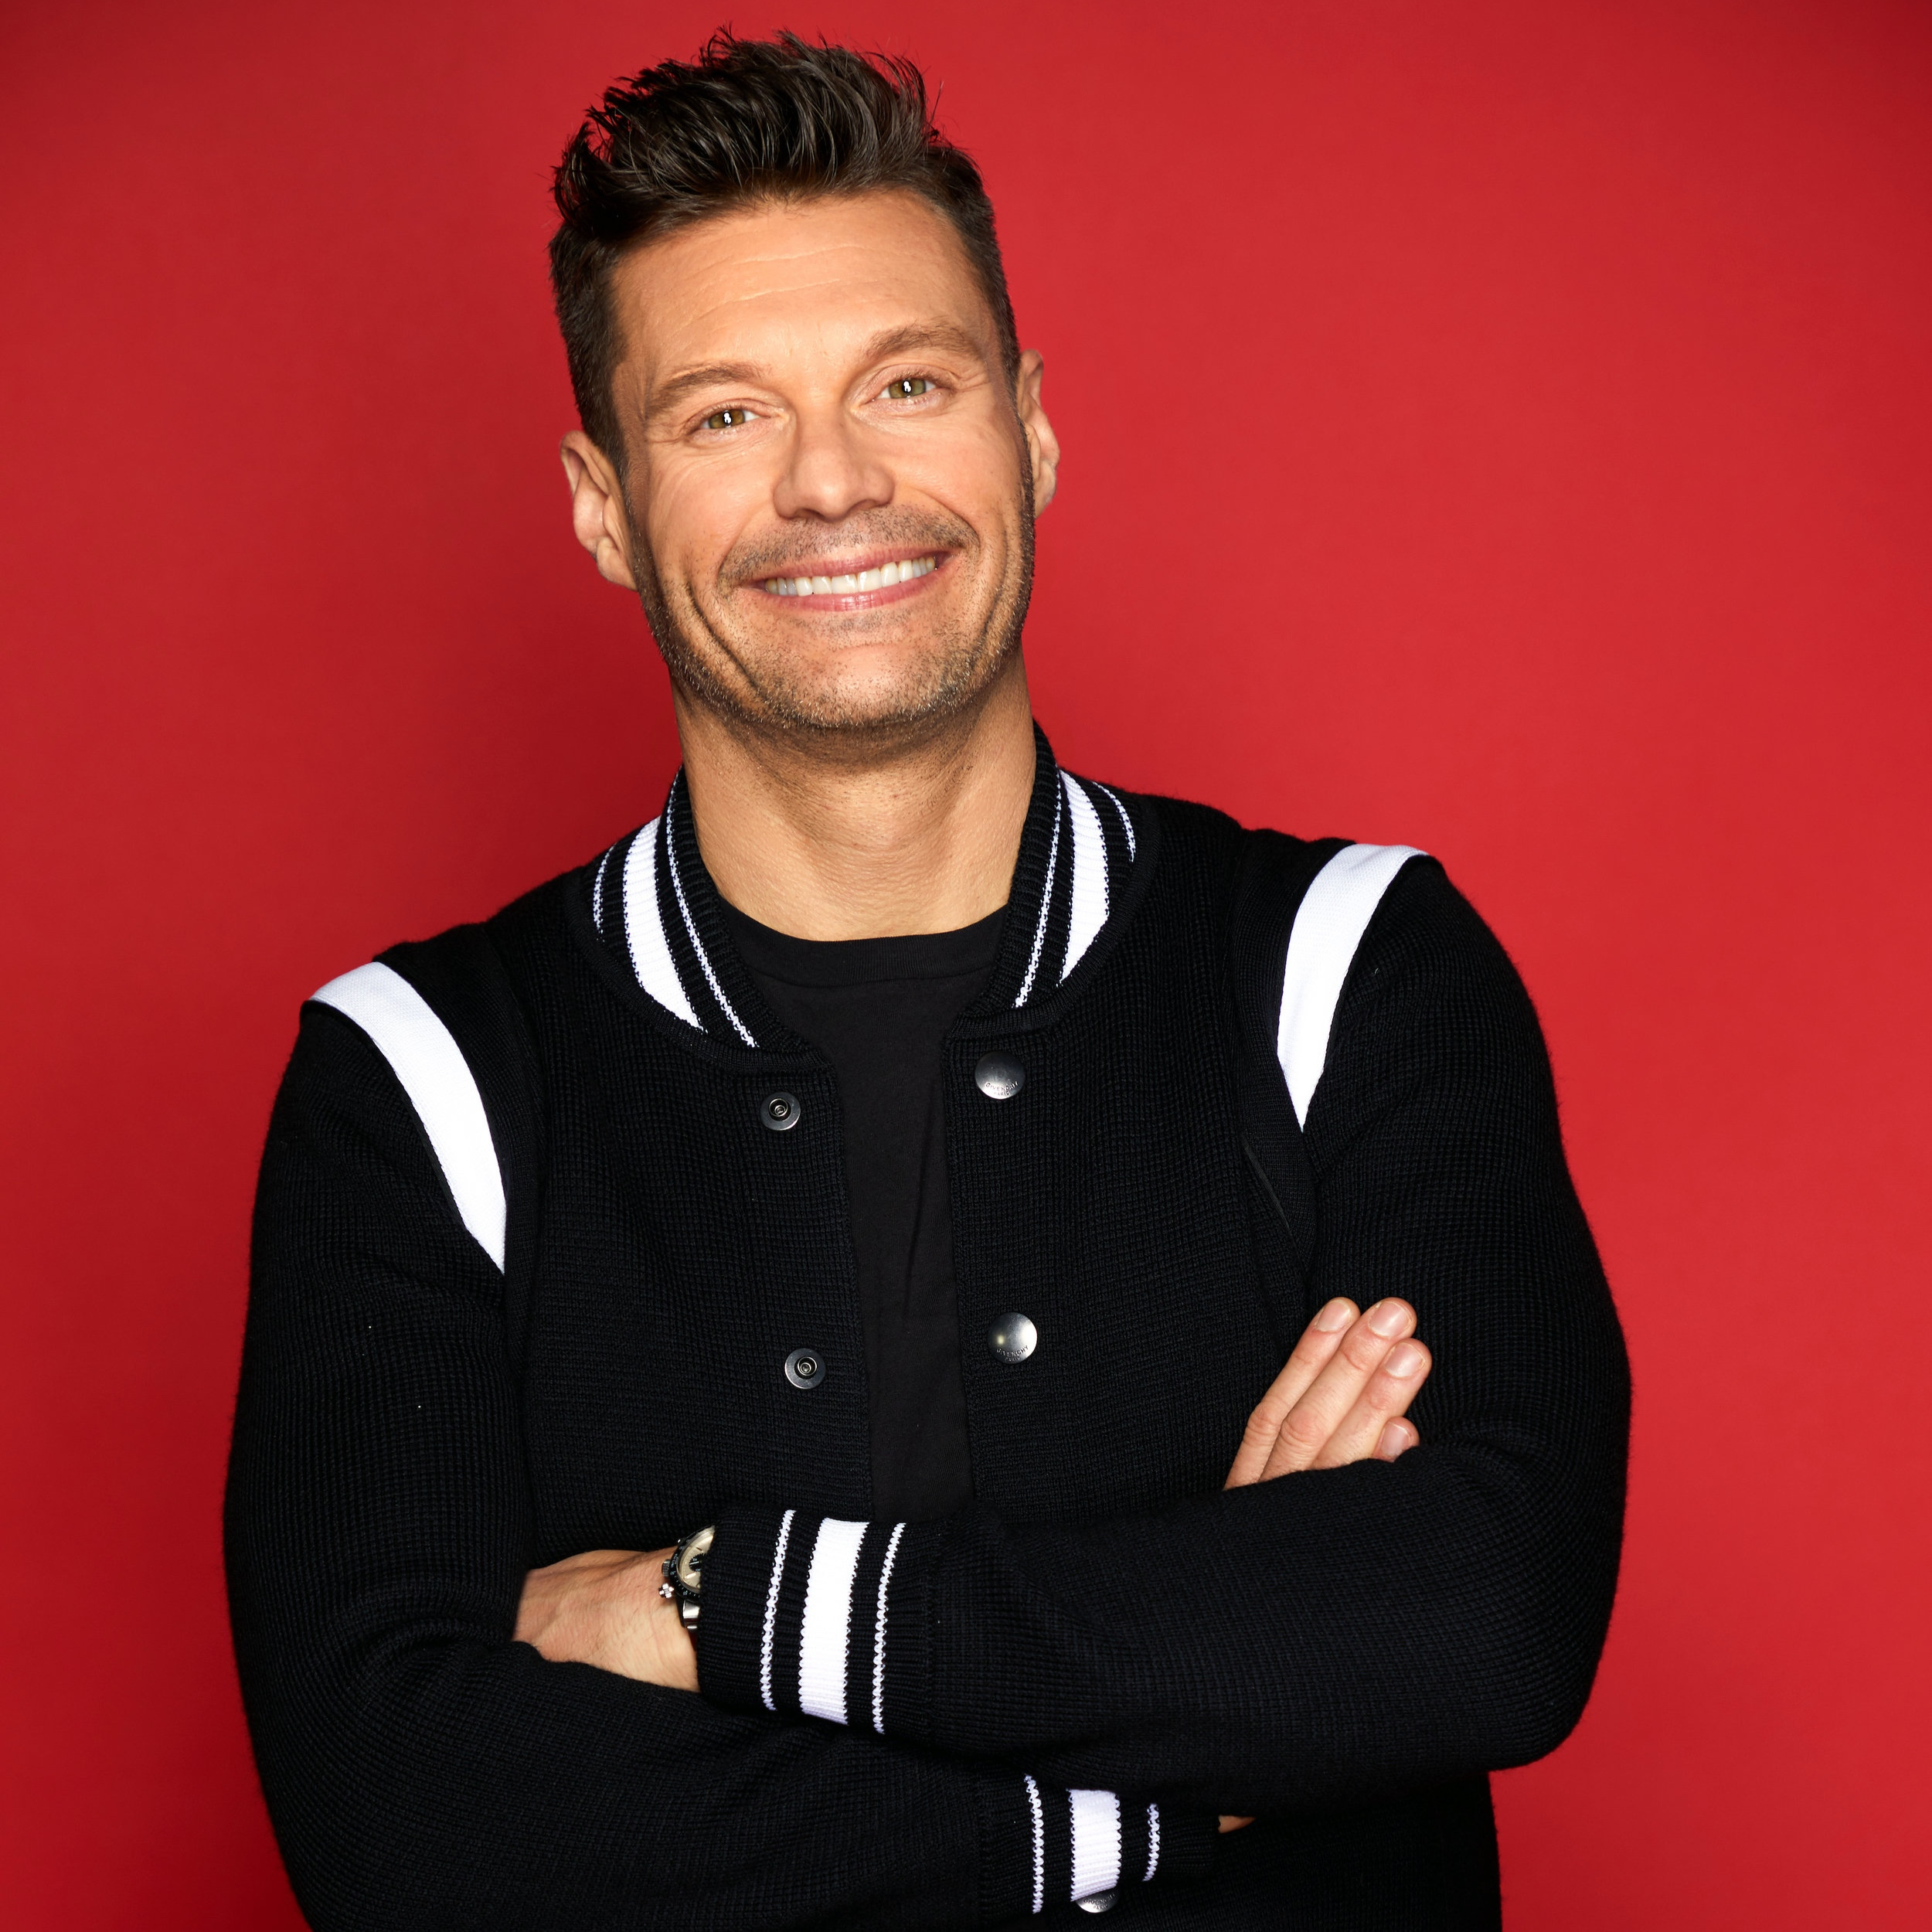 Ryan Seacrest - Ryan Seacrest holds preeminent positions in nationally syndicated and local radio and in broadcast and cable television. He is host of